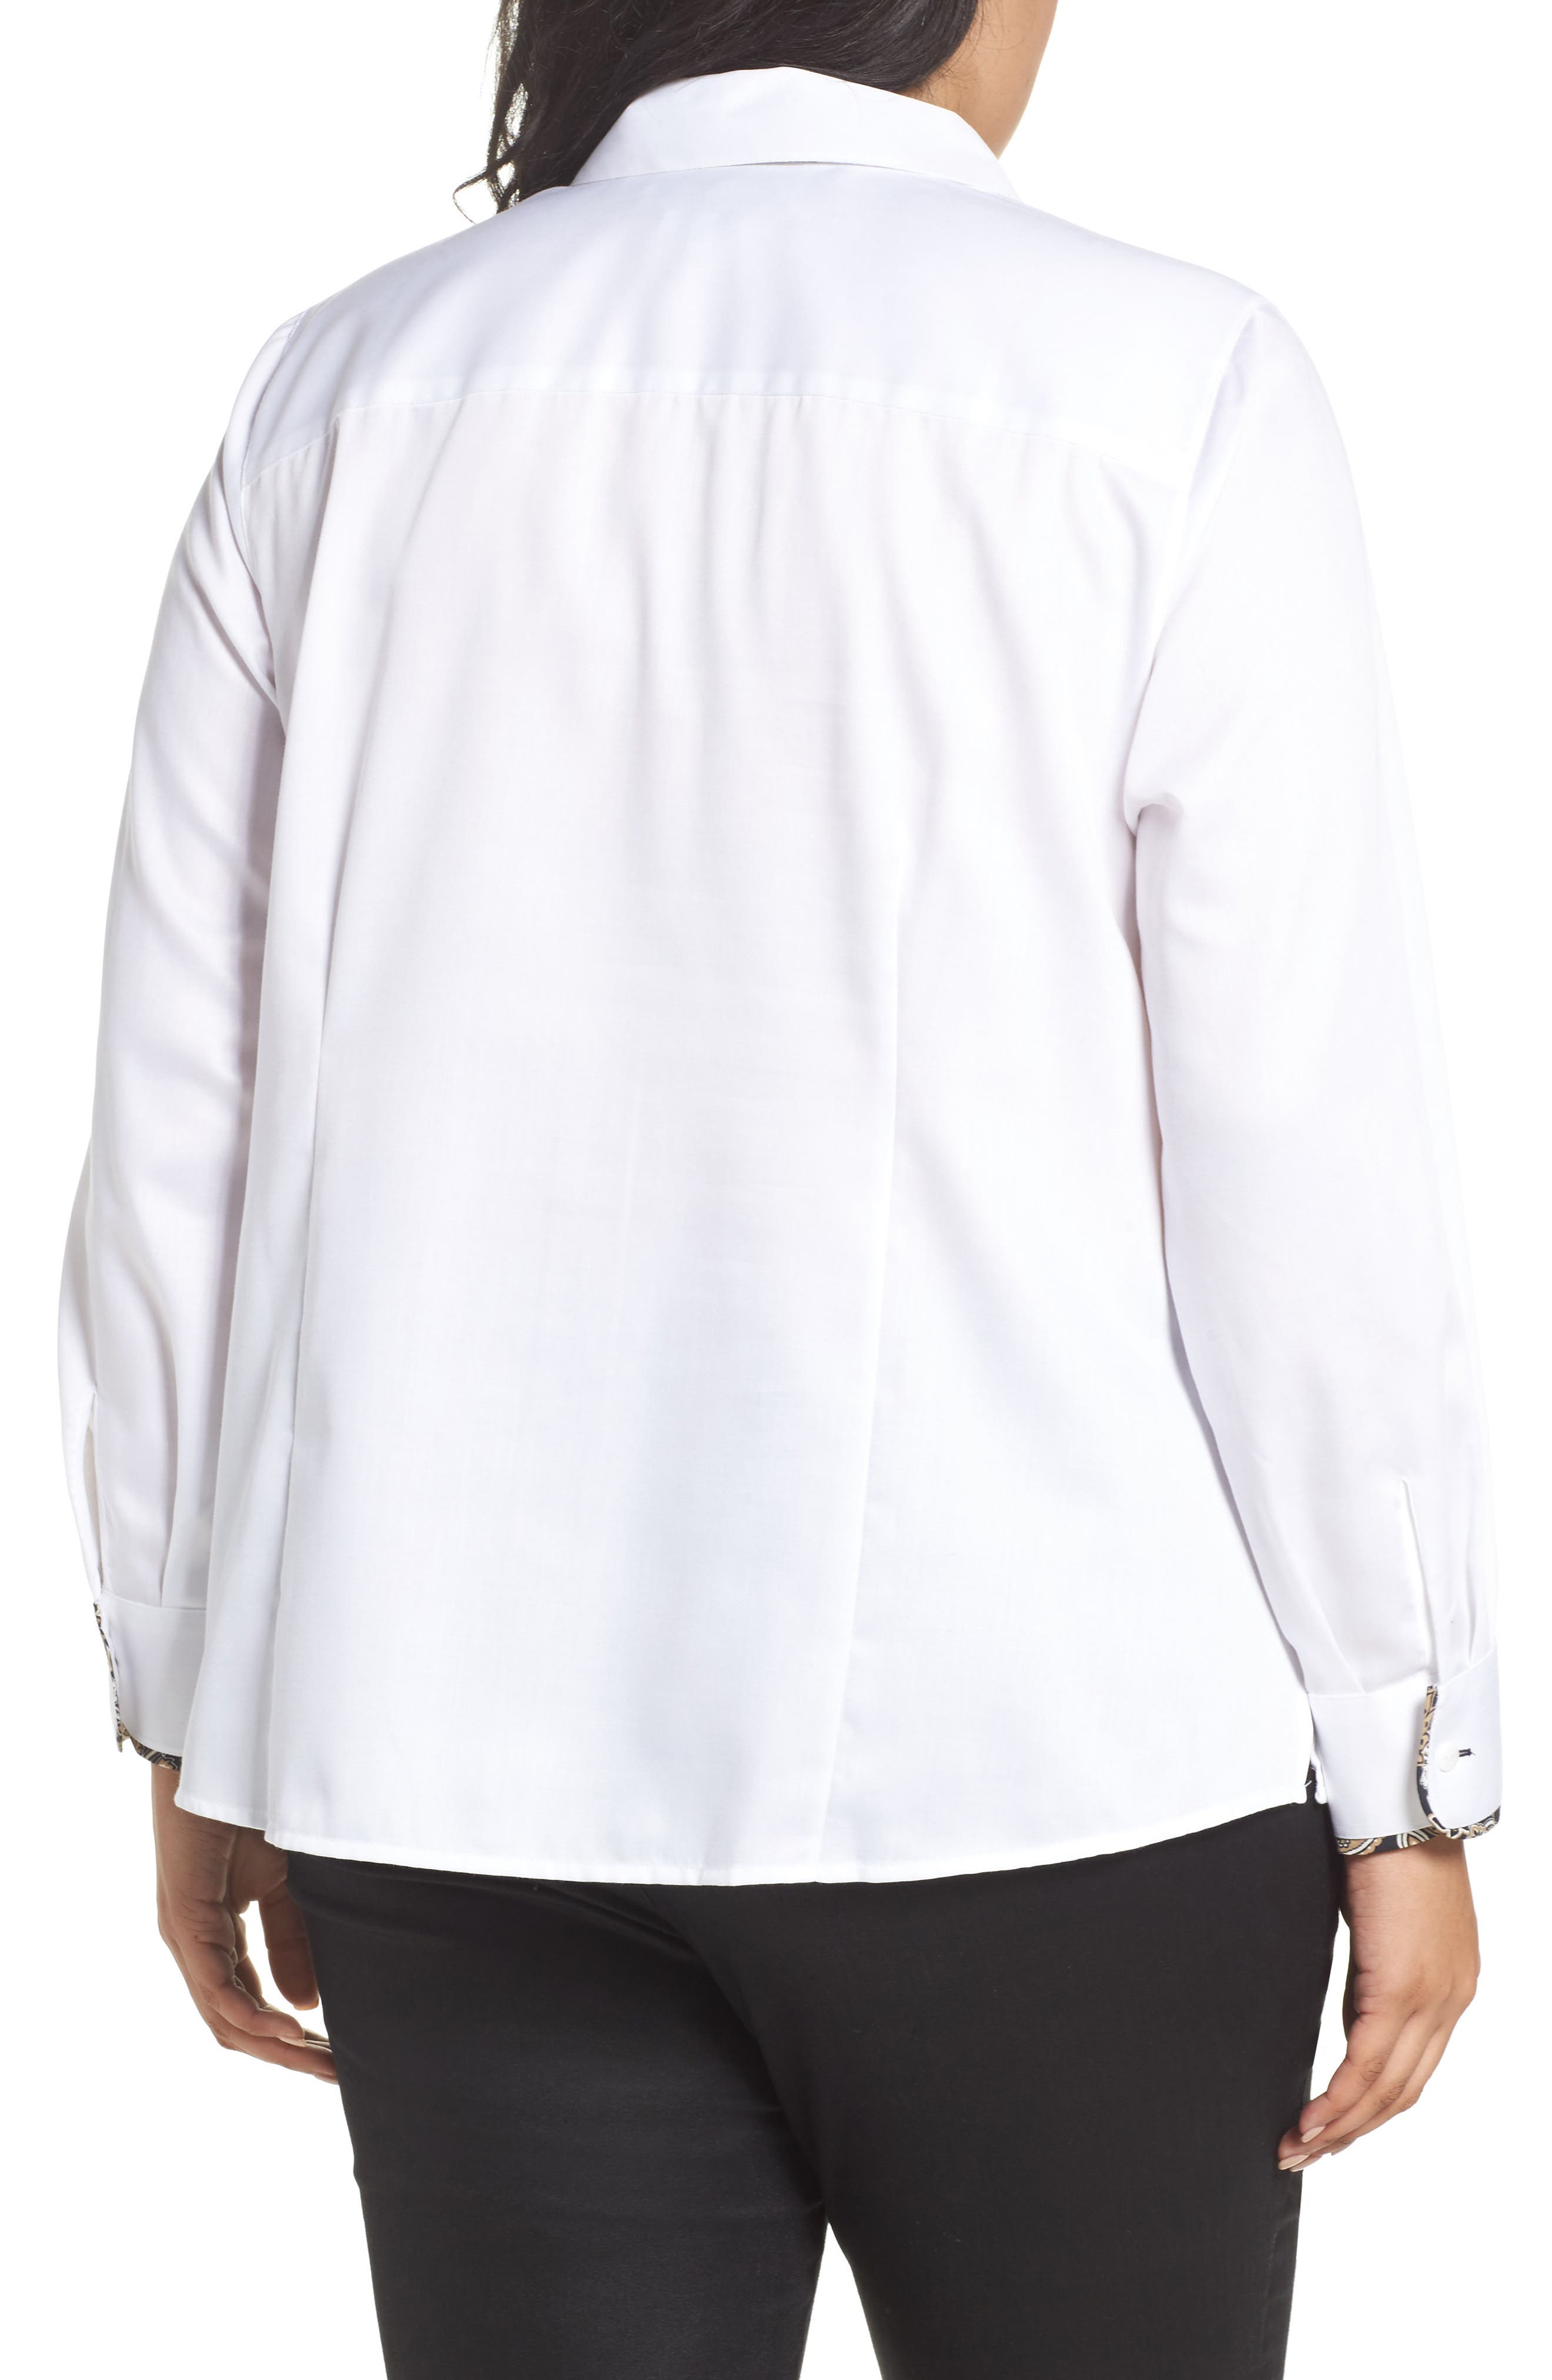 Brooke Contrast Trim Sateen Shirt,                             Alternate thumbnail 2, color,                             White